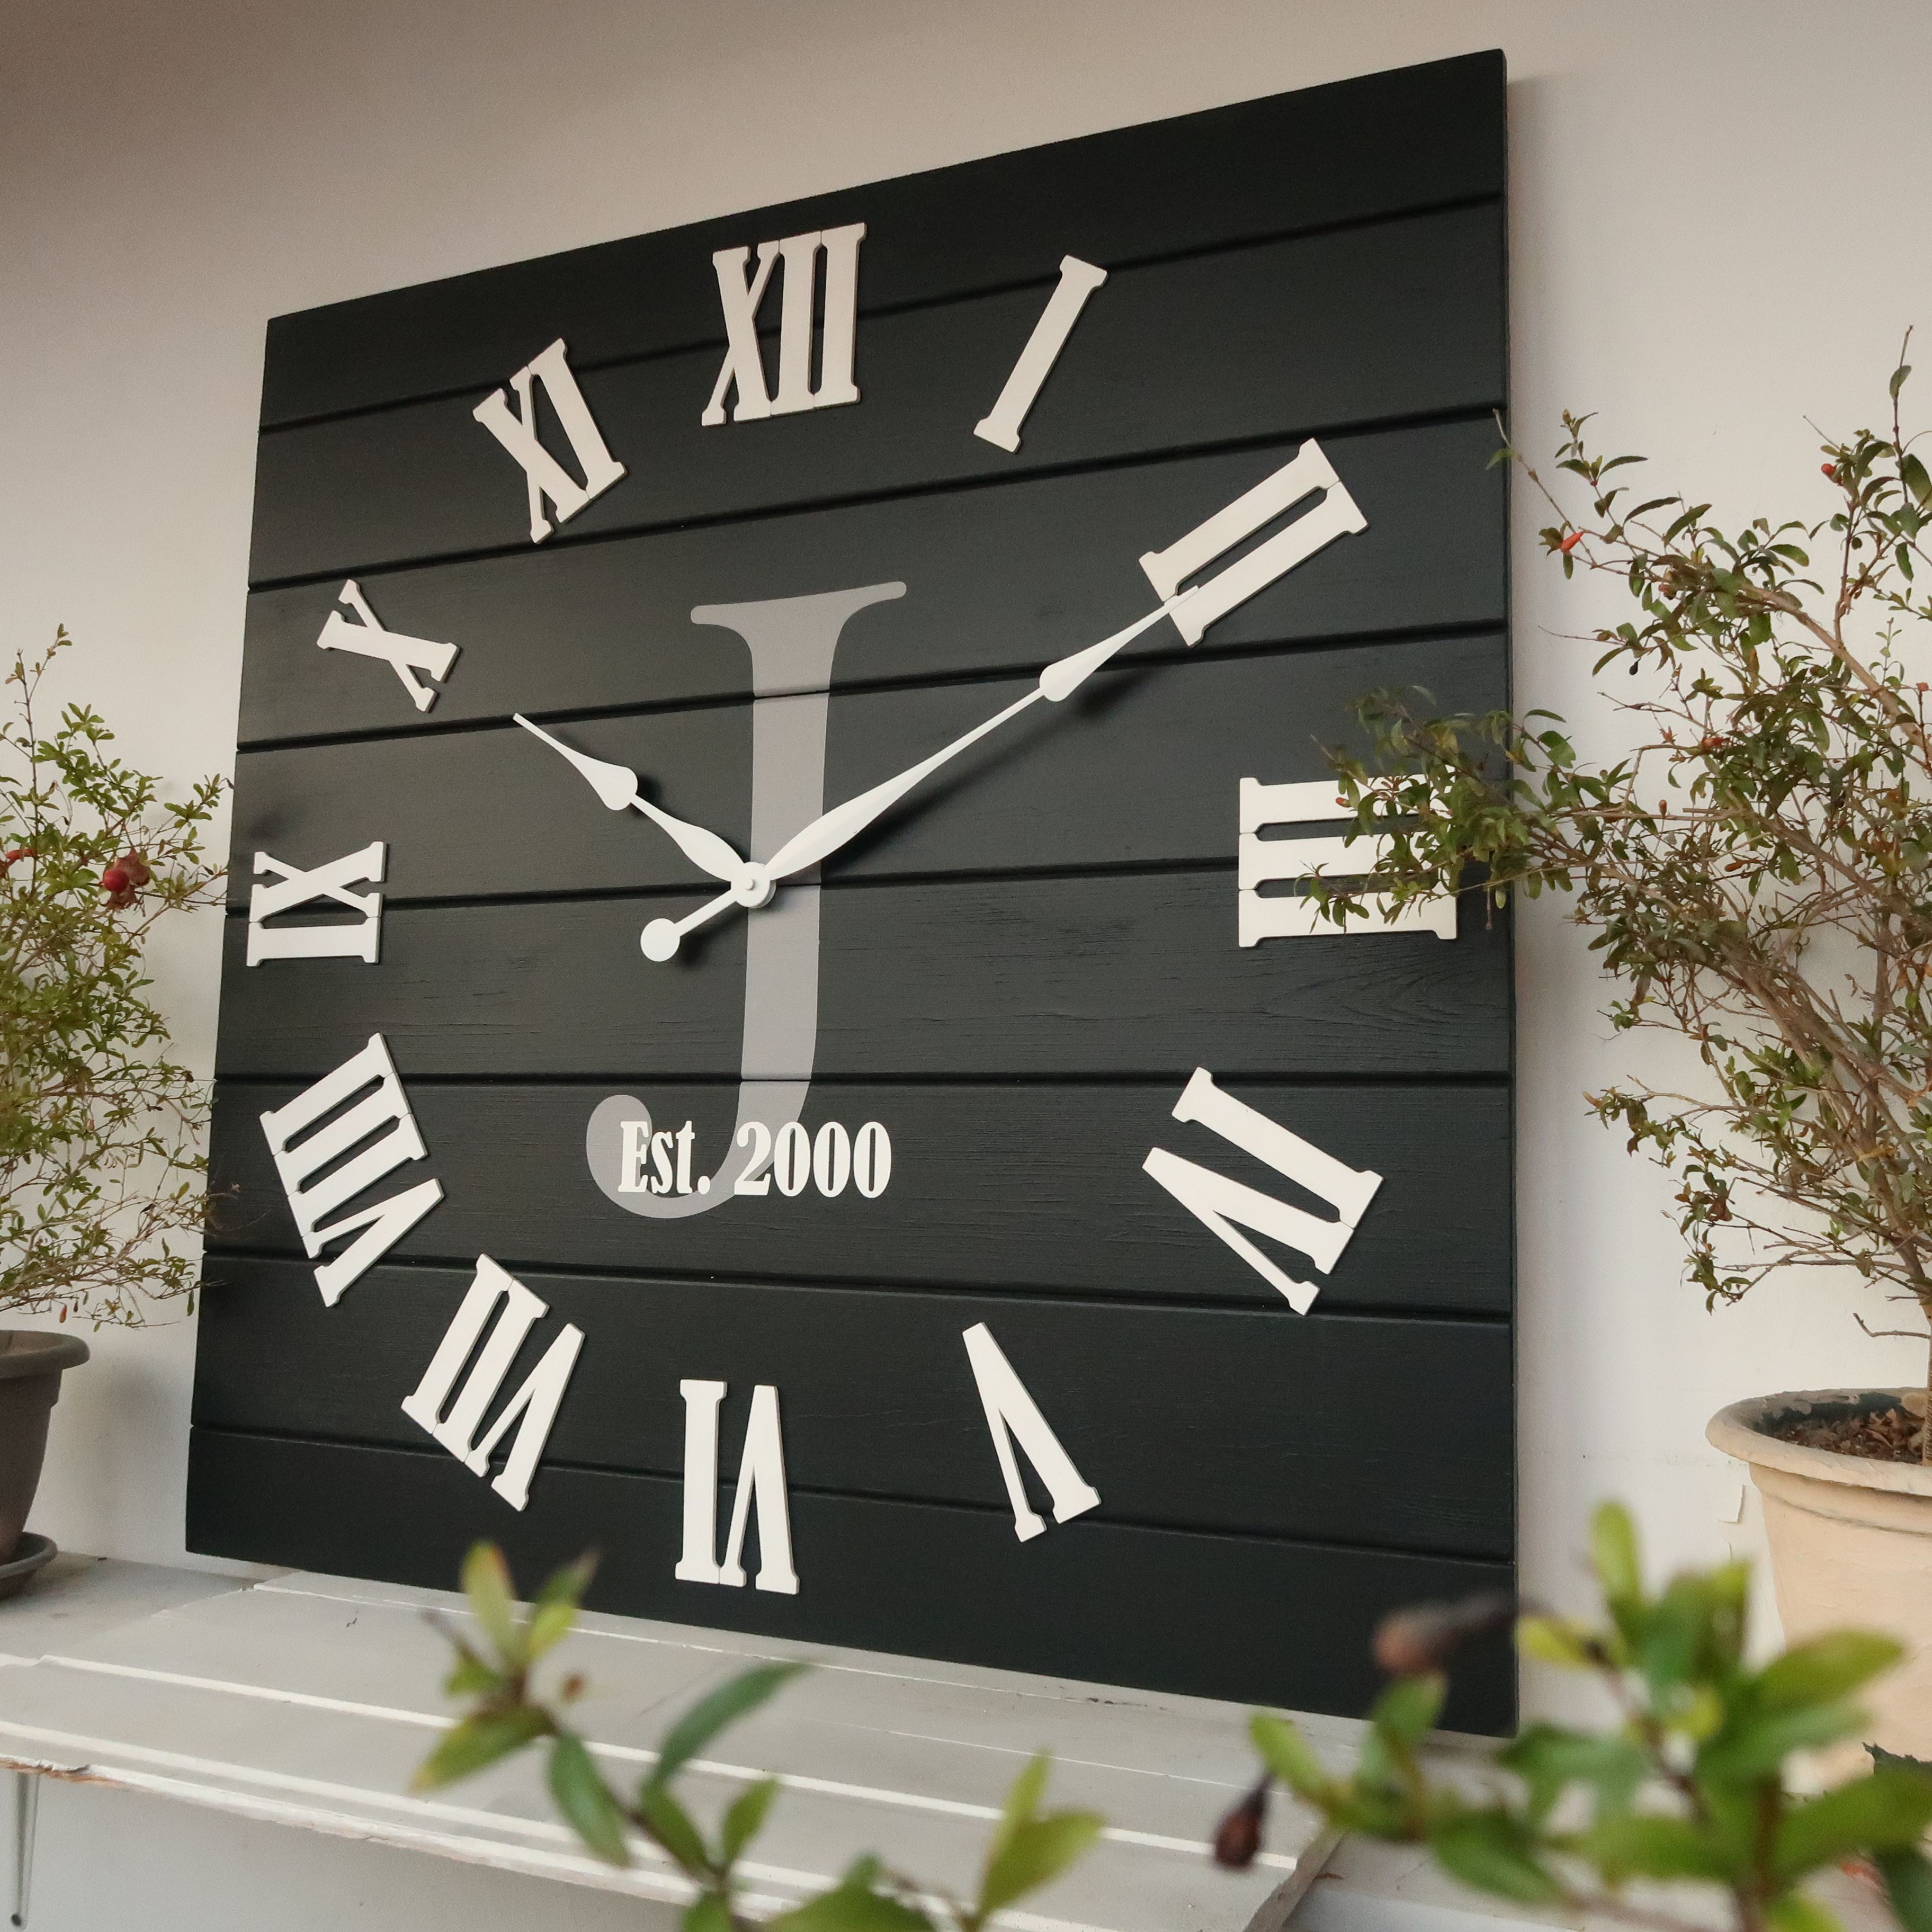 28 30 33 Personalized Square Wall Clock Etsy In 2020 Distressed Wall Clock Wall Clock Square Wall Clock